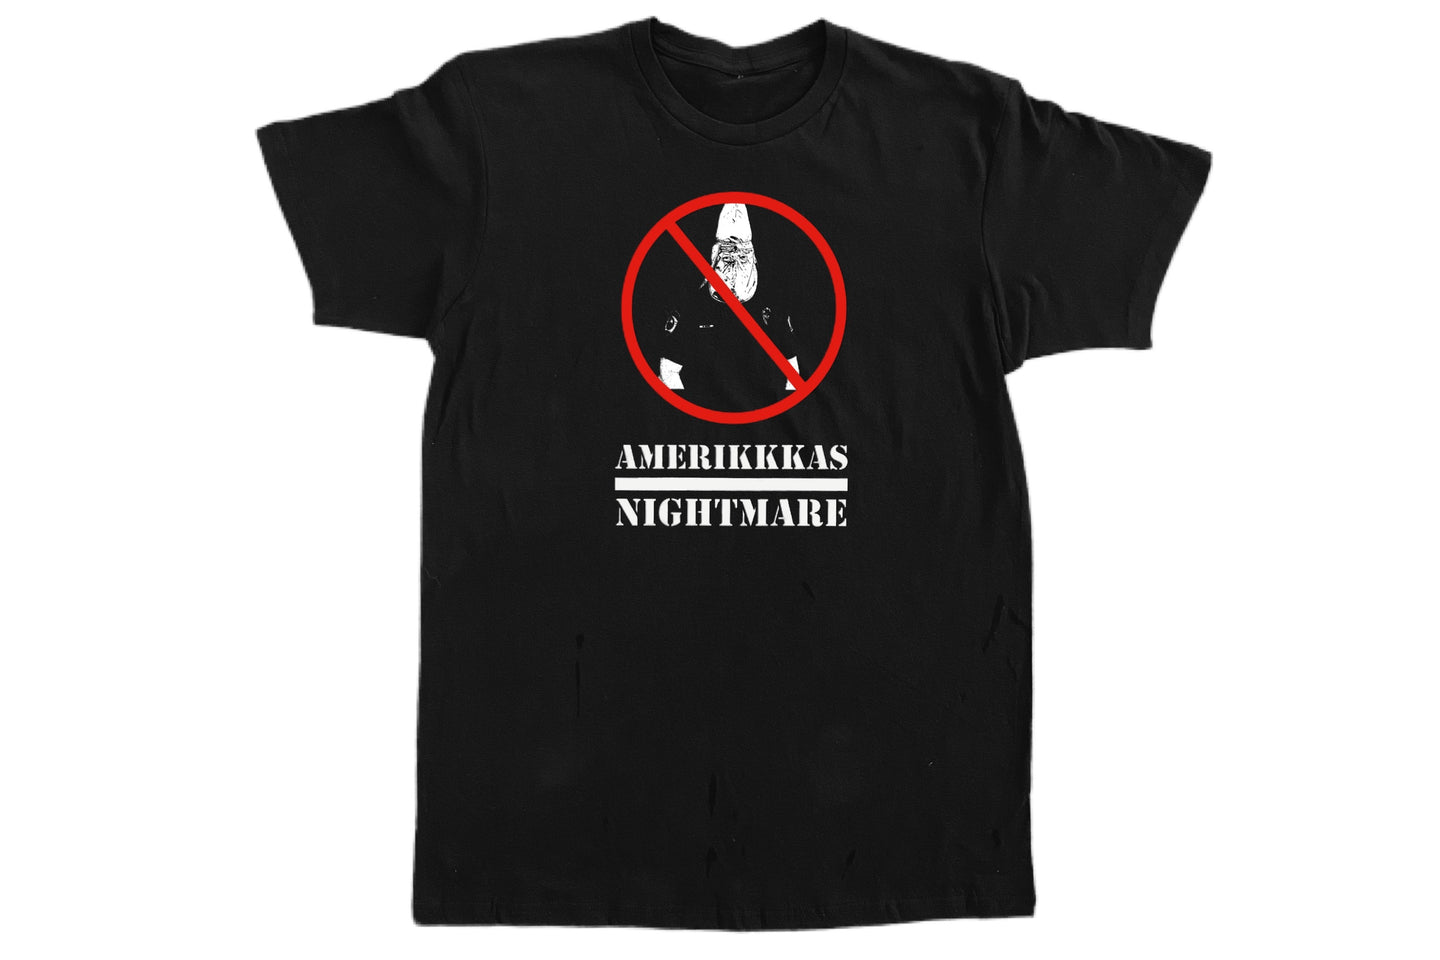 AMERIKKKAS NIGHTMARE 2.0 T-SHIRT